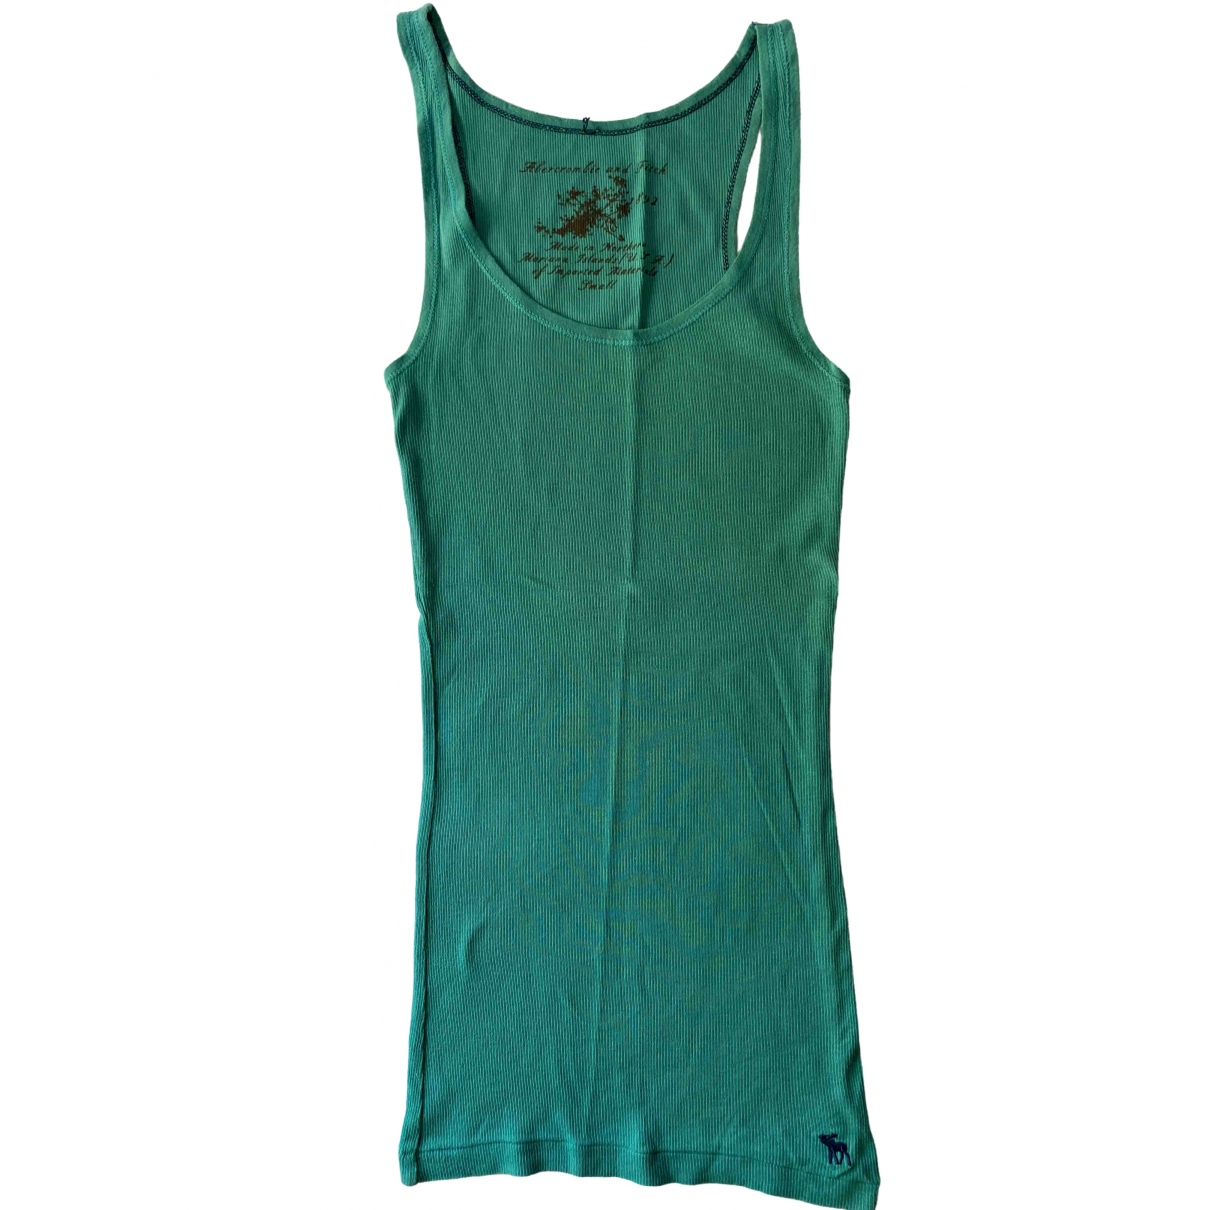 Abercrombie & Fitch \N Green Cotton  top for Women S International